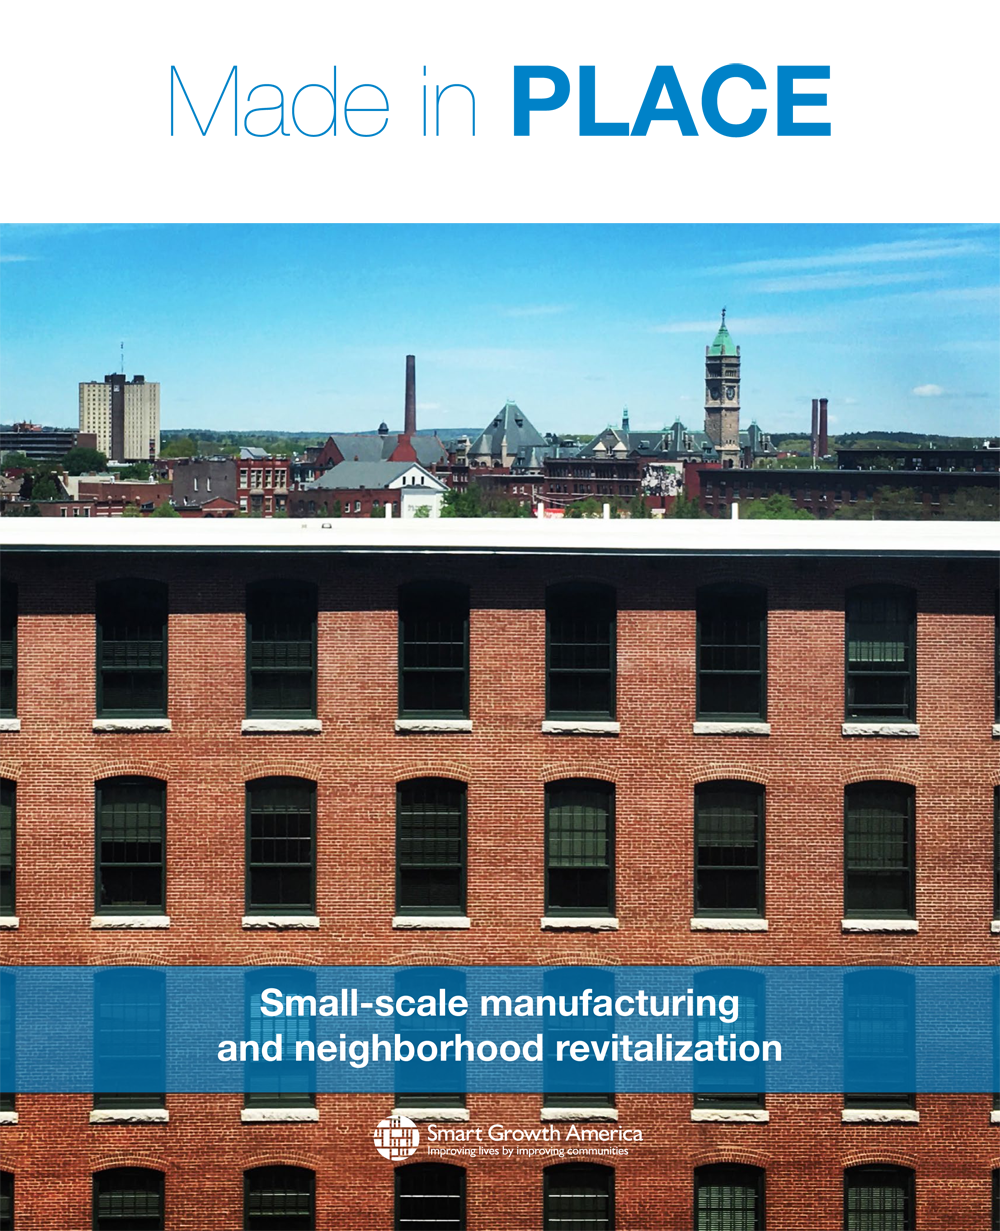 Made in Place: Small-Scale Manufacturing & Neighborhood Revitalization